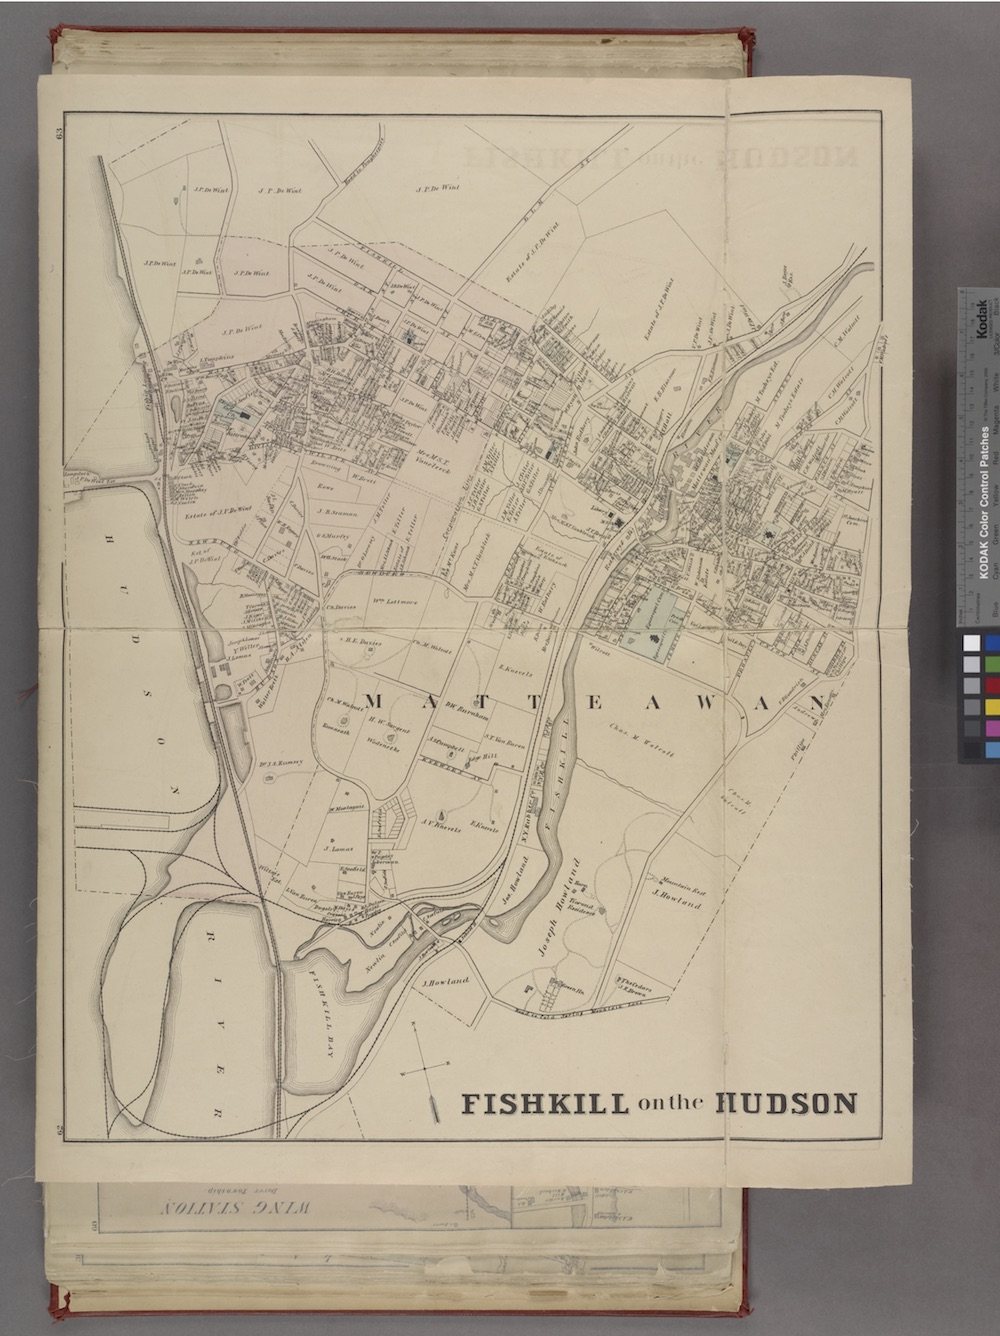 A map of Beacon from 1876, when the town was known as Fishkill on the Hudson. The Map shows the Matteawan stream.